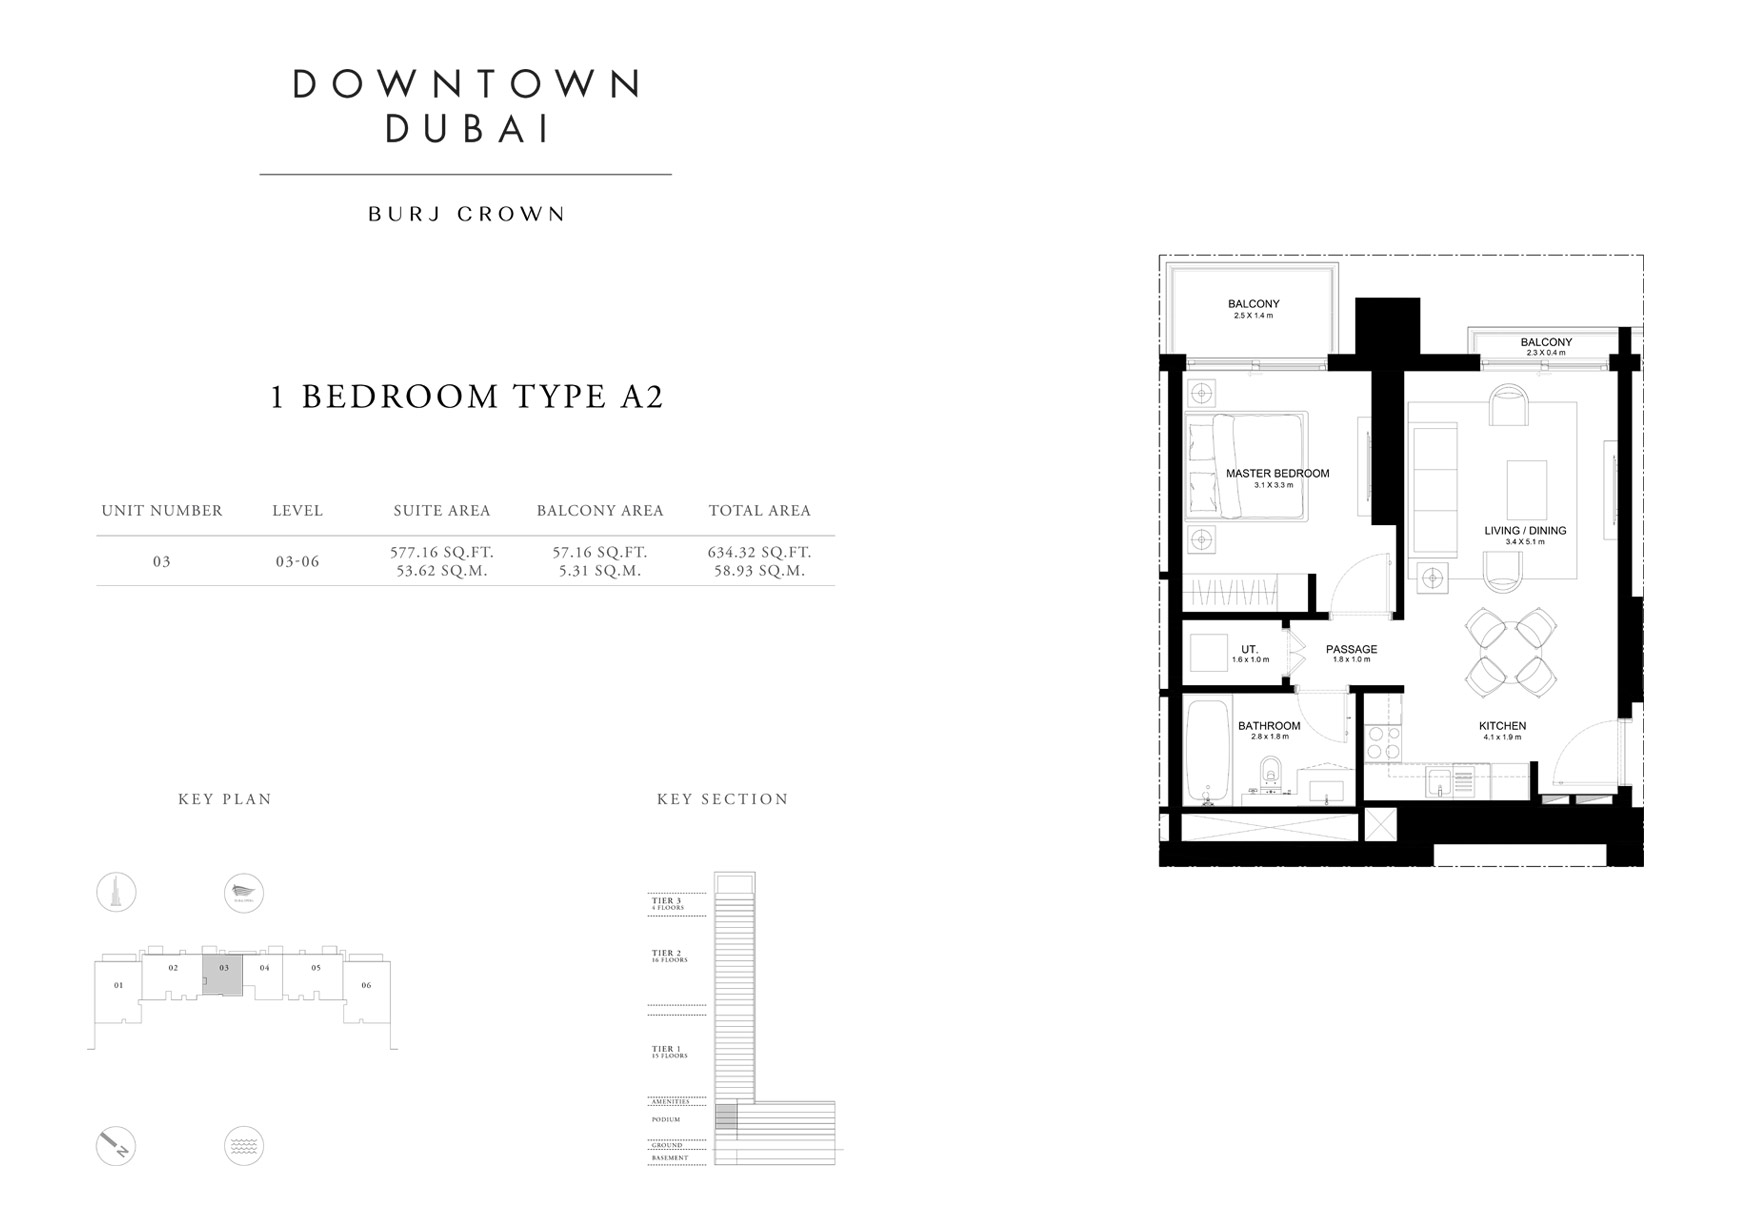 1 Bedroom Type A2, Size 634 sq ft